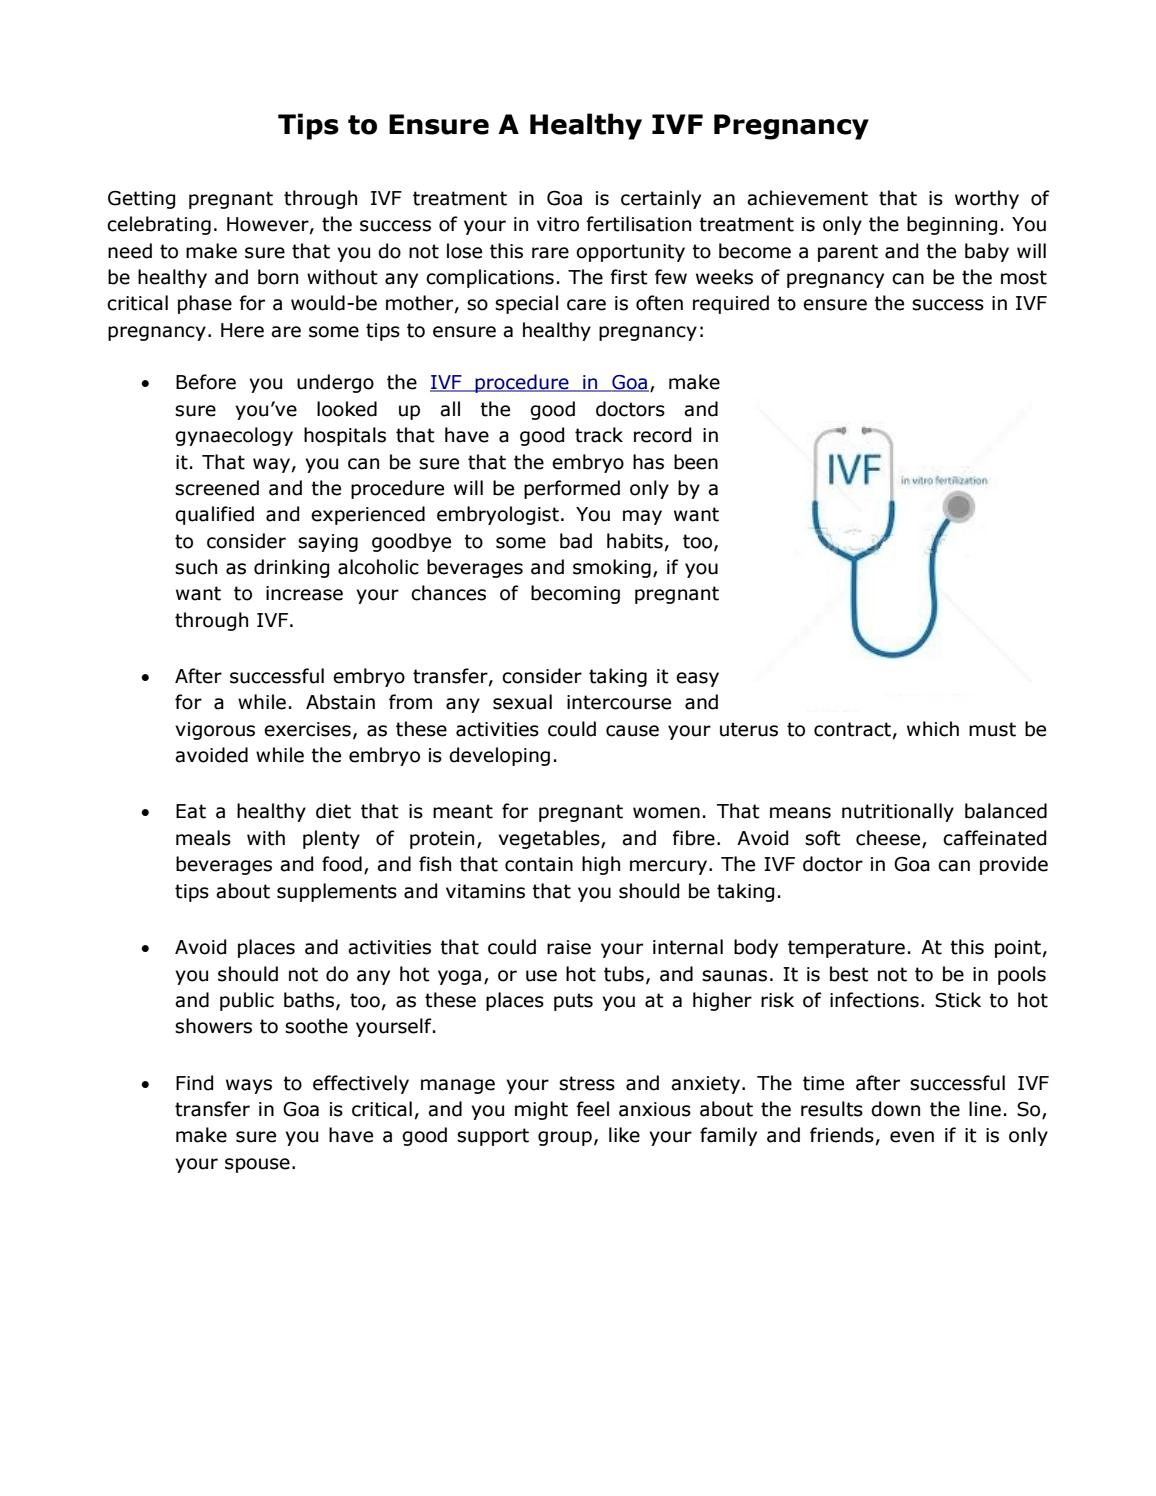 Tips to Ensure A Healthy IVF Pregnancy by Pai Hospital - issuu